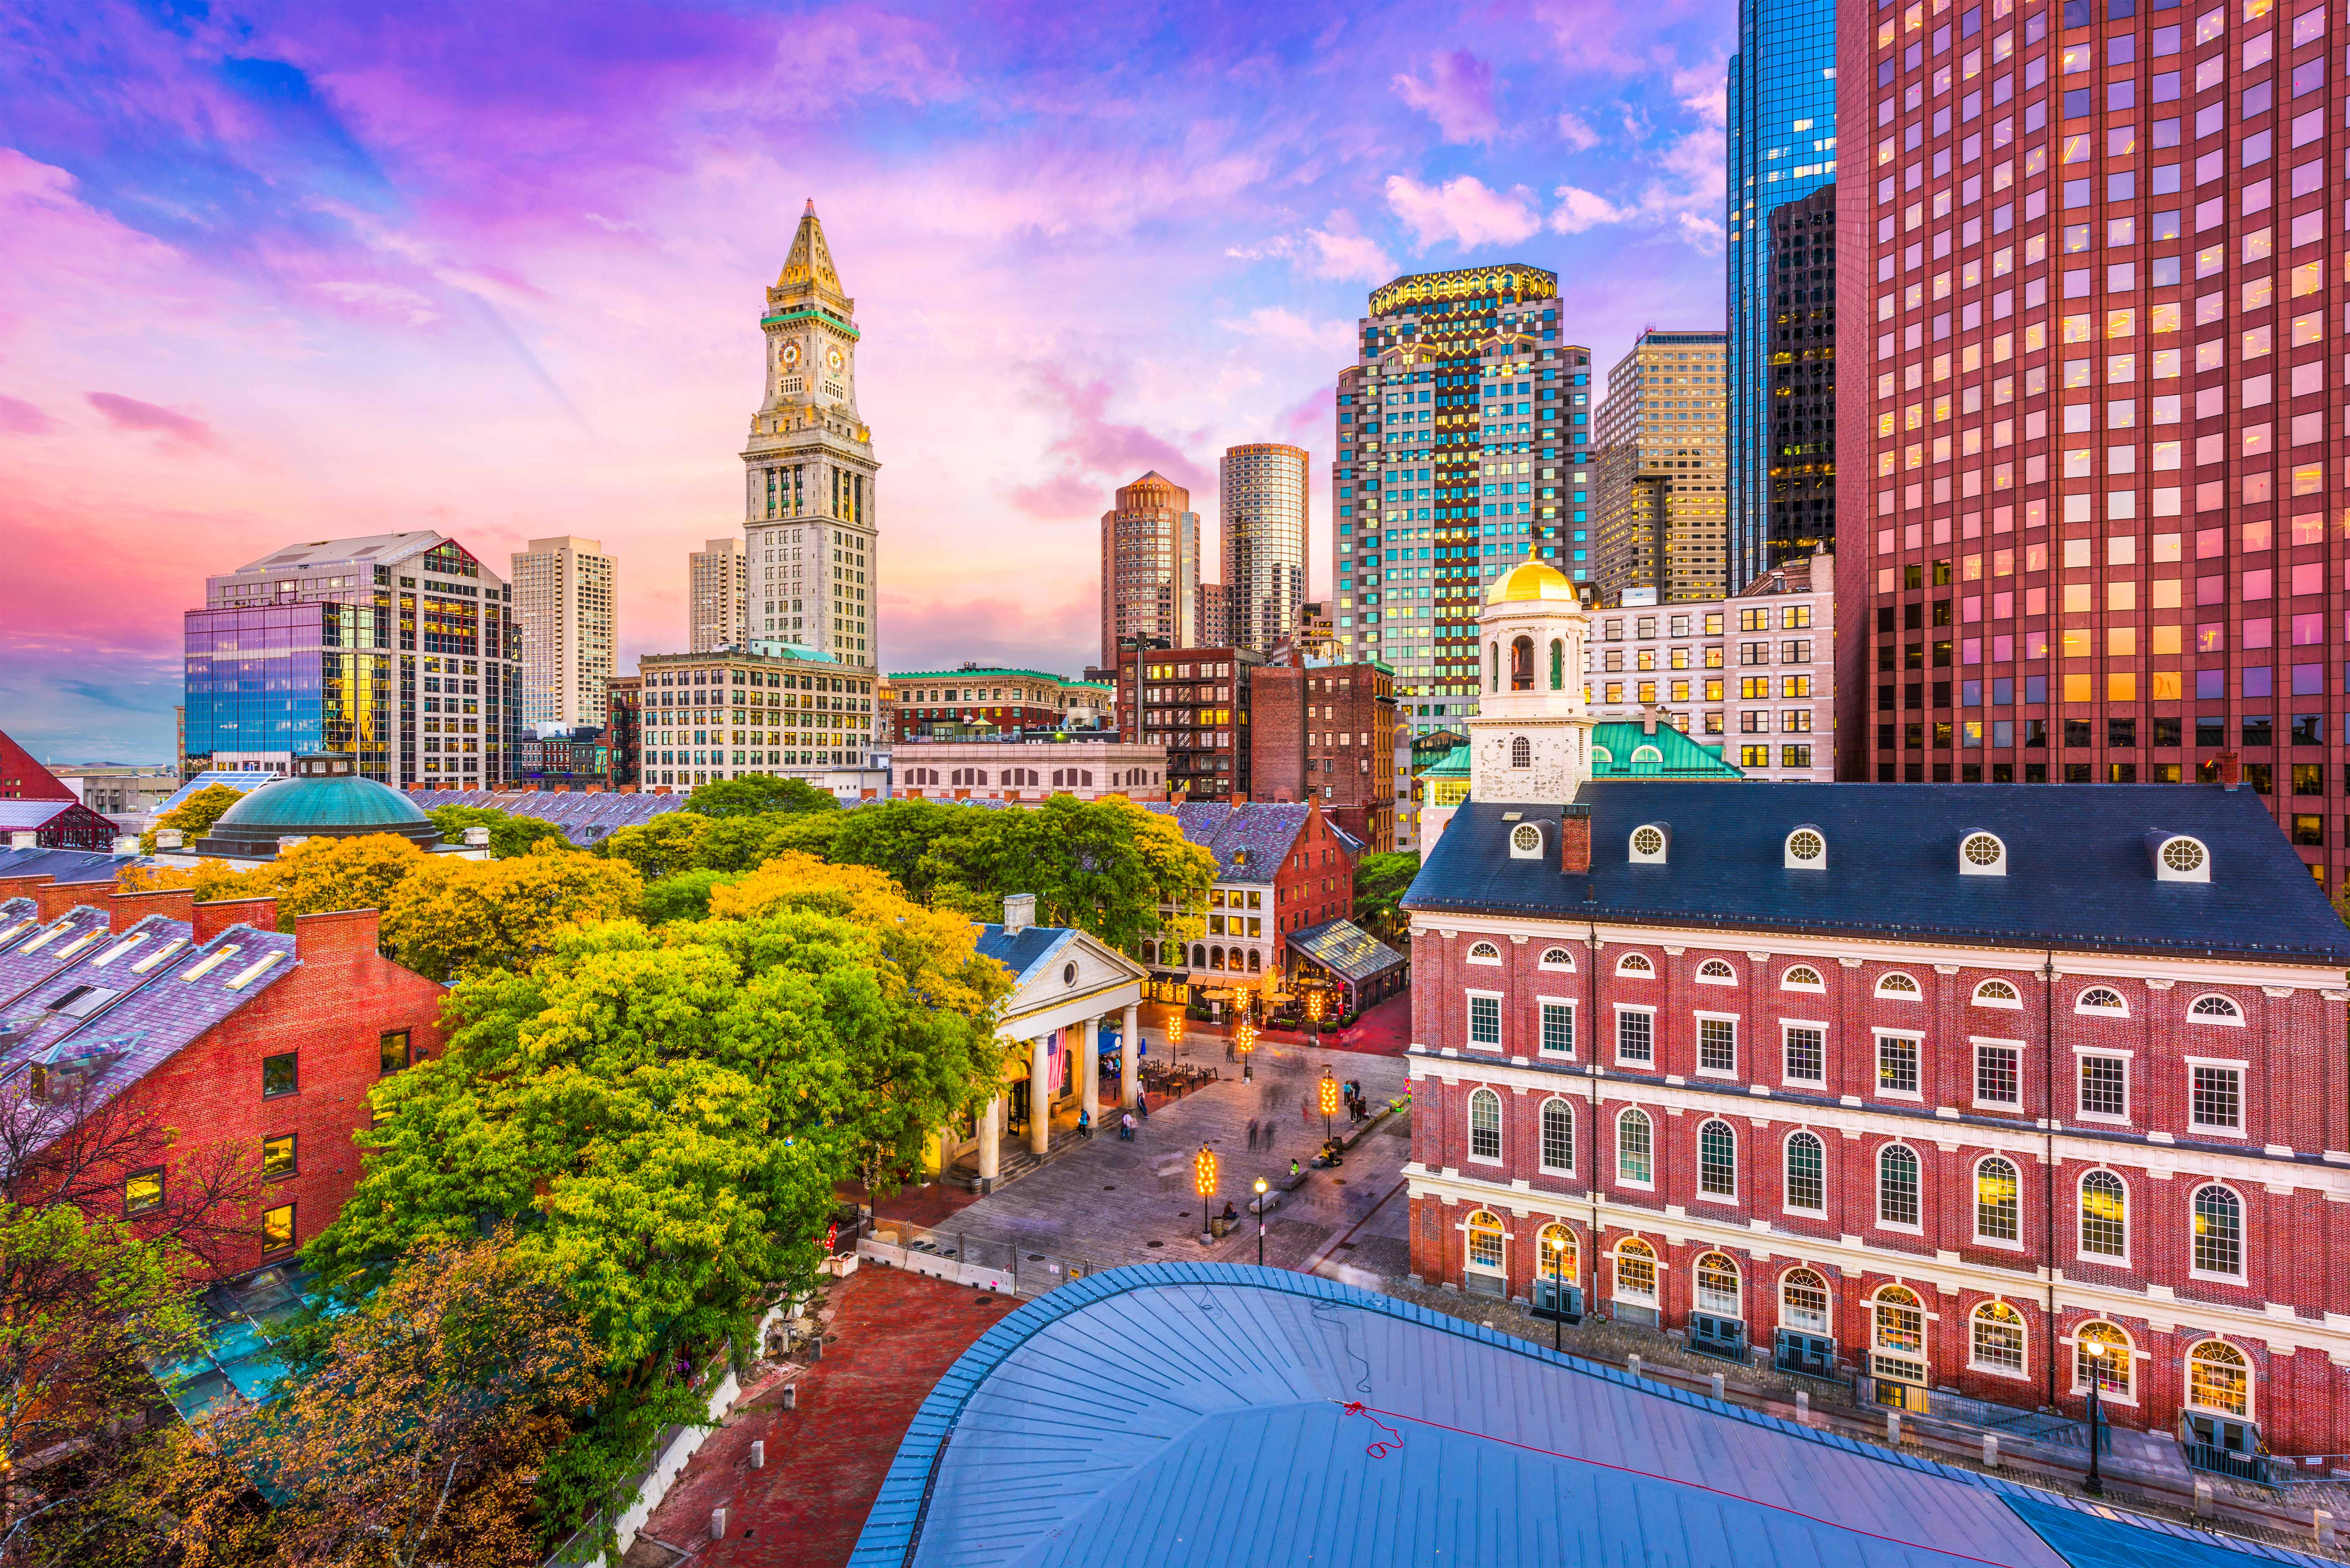 HOW TO SEE BOSTON IN JUST ONE DAY - TAKE NEW YORK TOURS